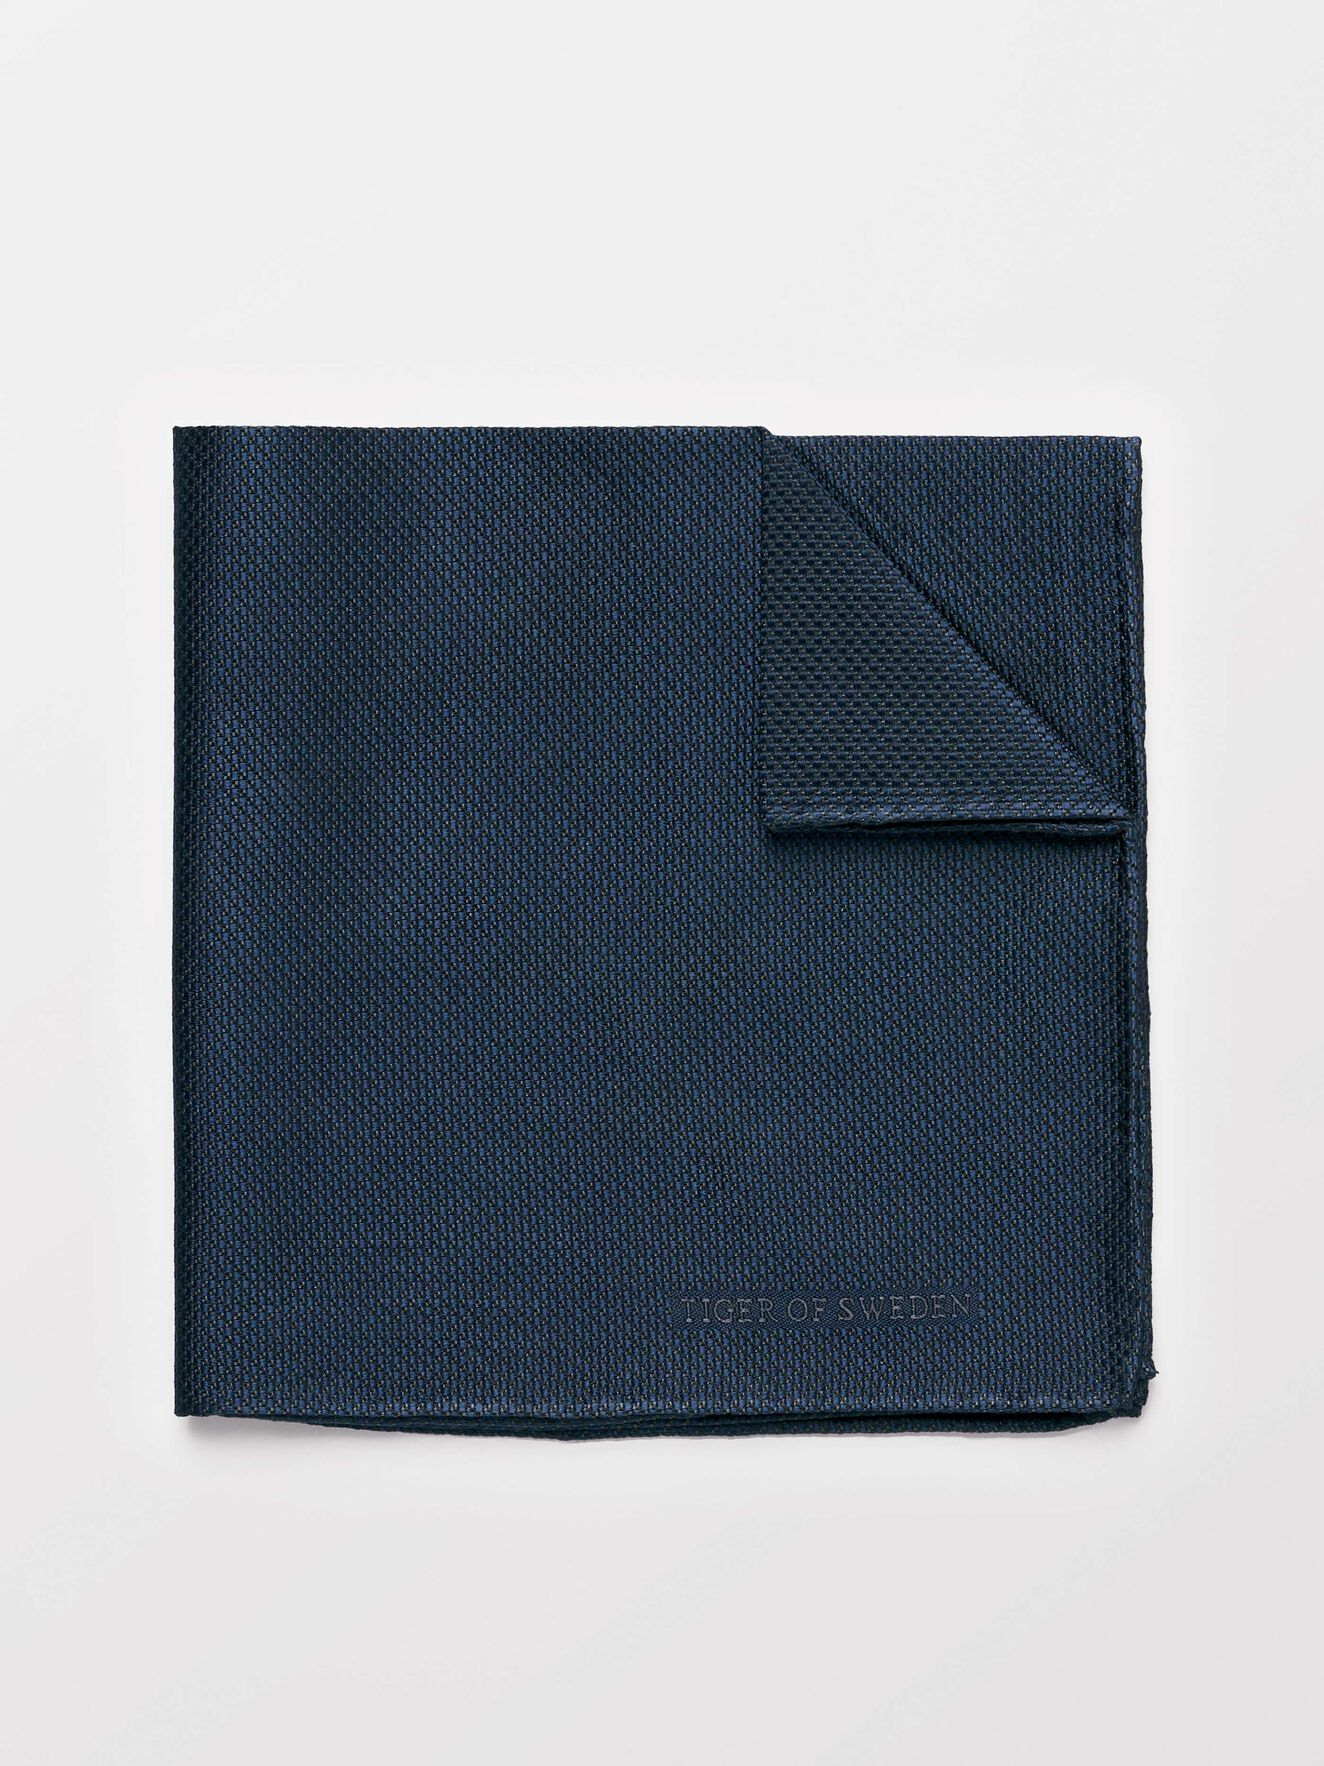 Pallisade Handkerchief in Charcoal from Tiger of Sweden